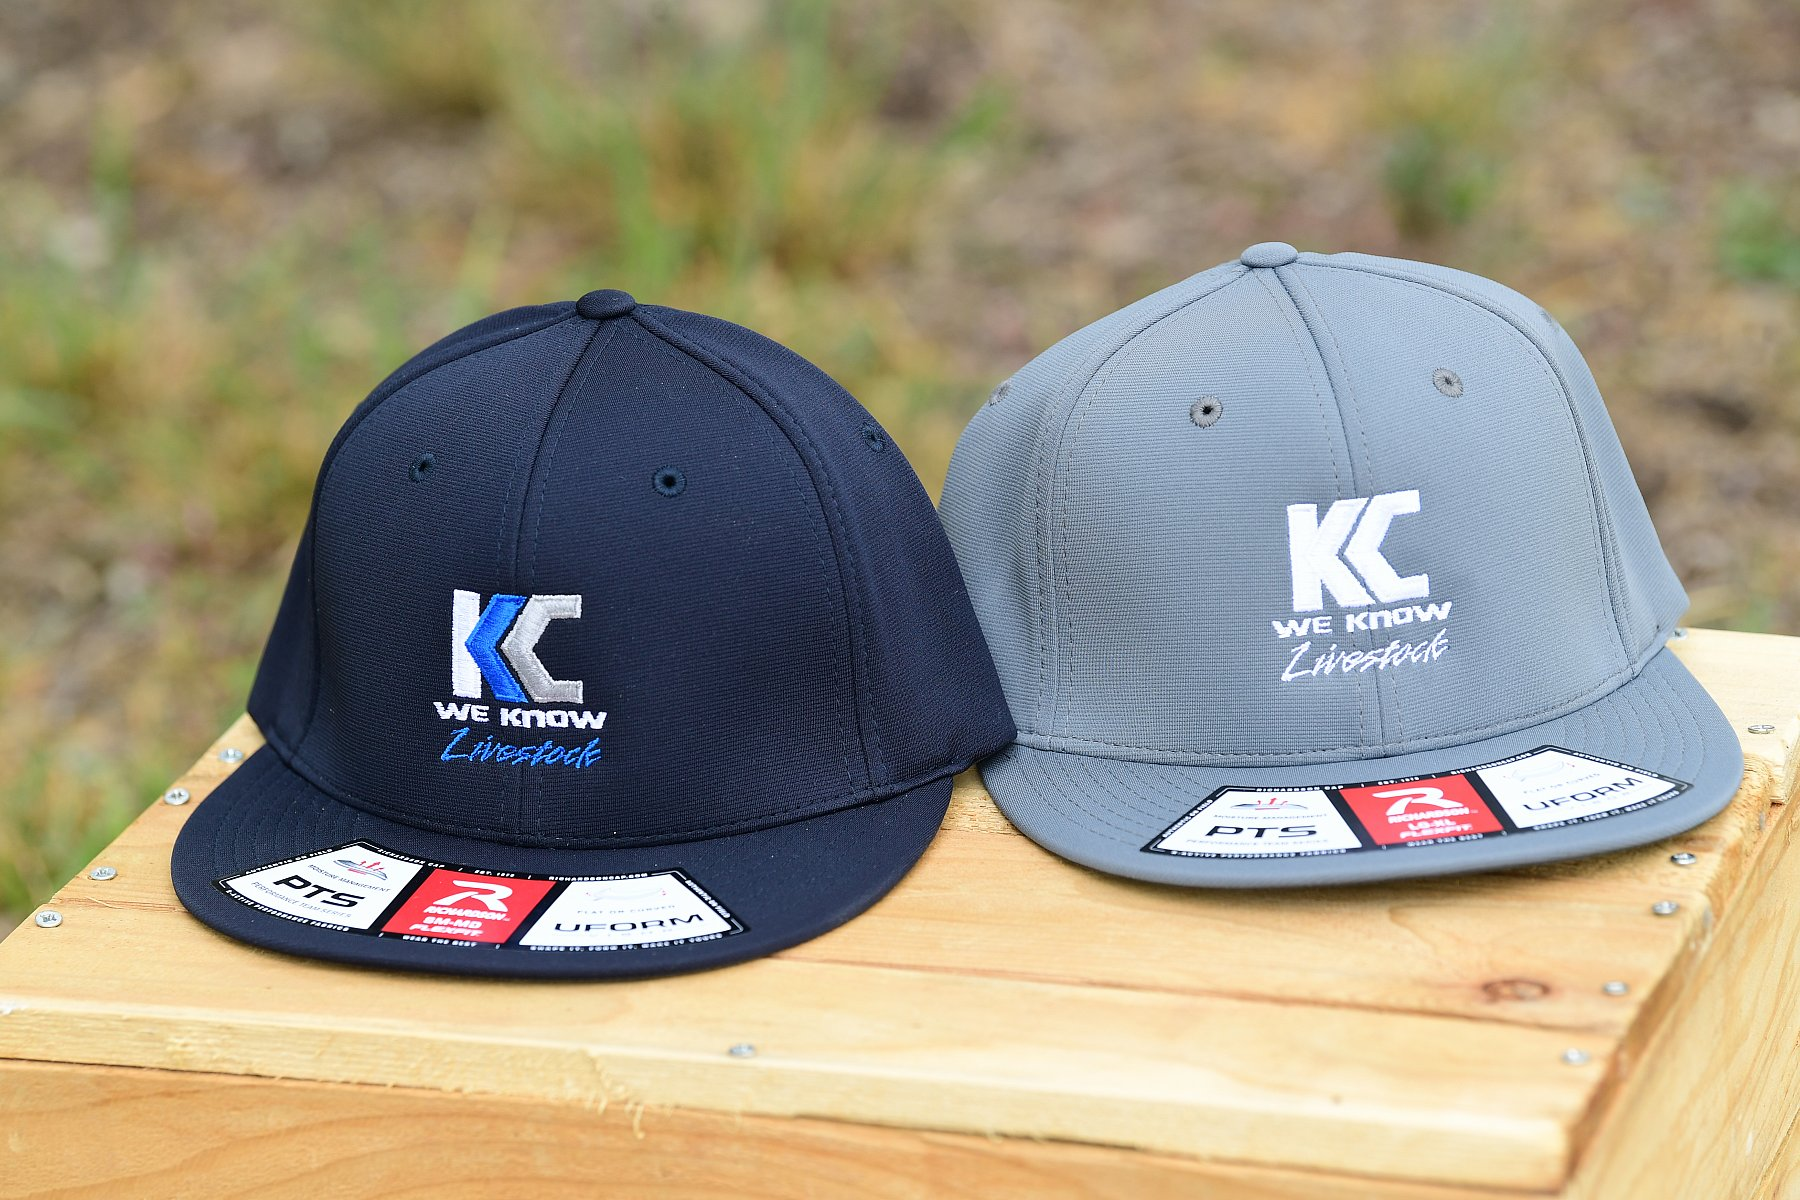 PTS20 Fitted Hat-Grey Silver Logo Size LG/XL | PTS20_KC5_3717.JPG